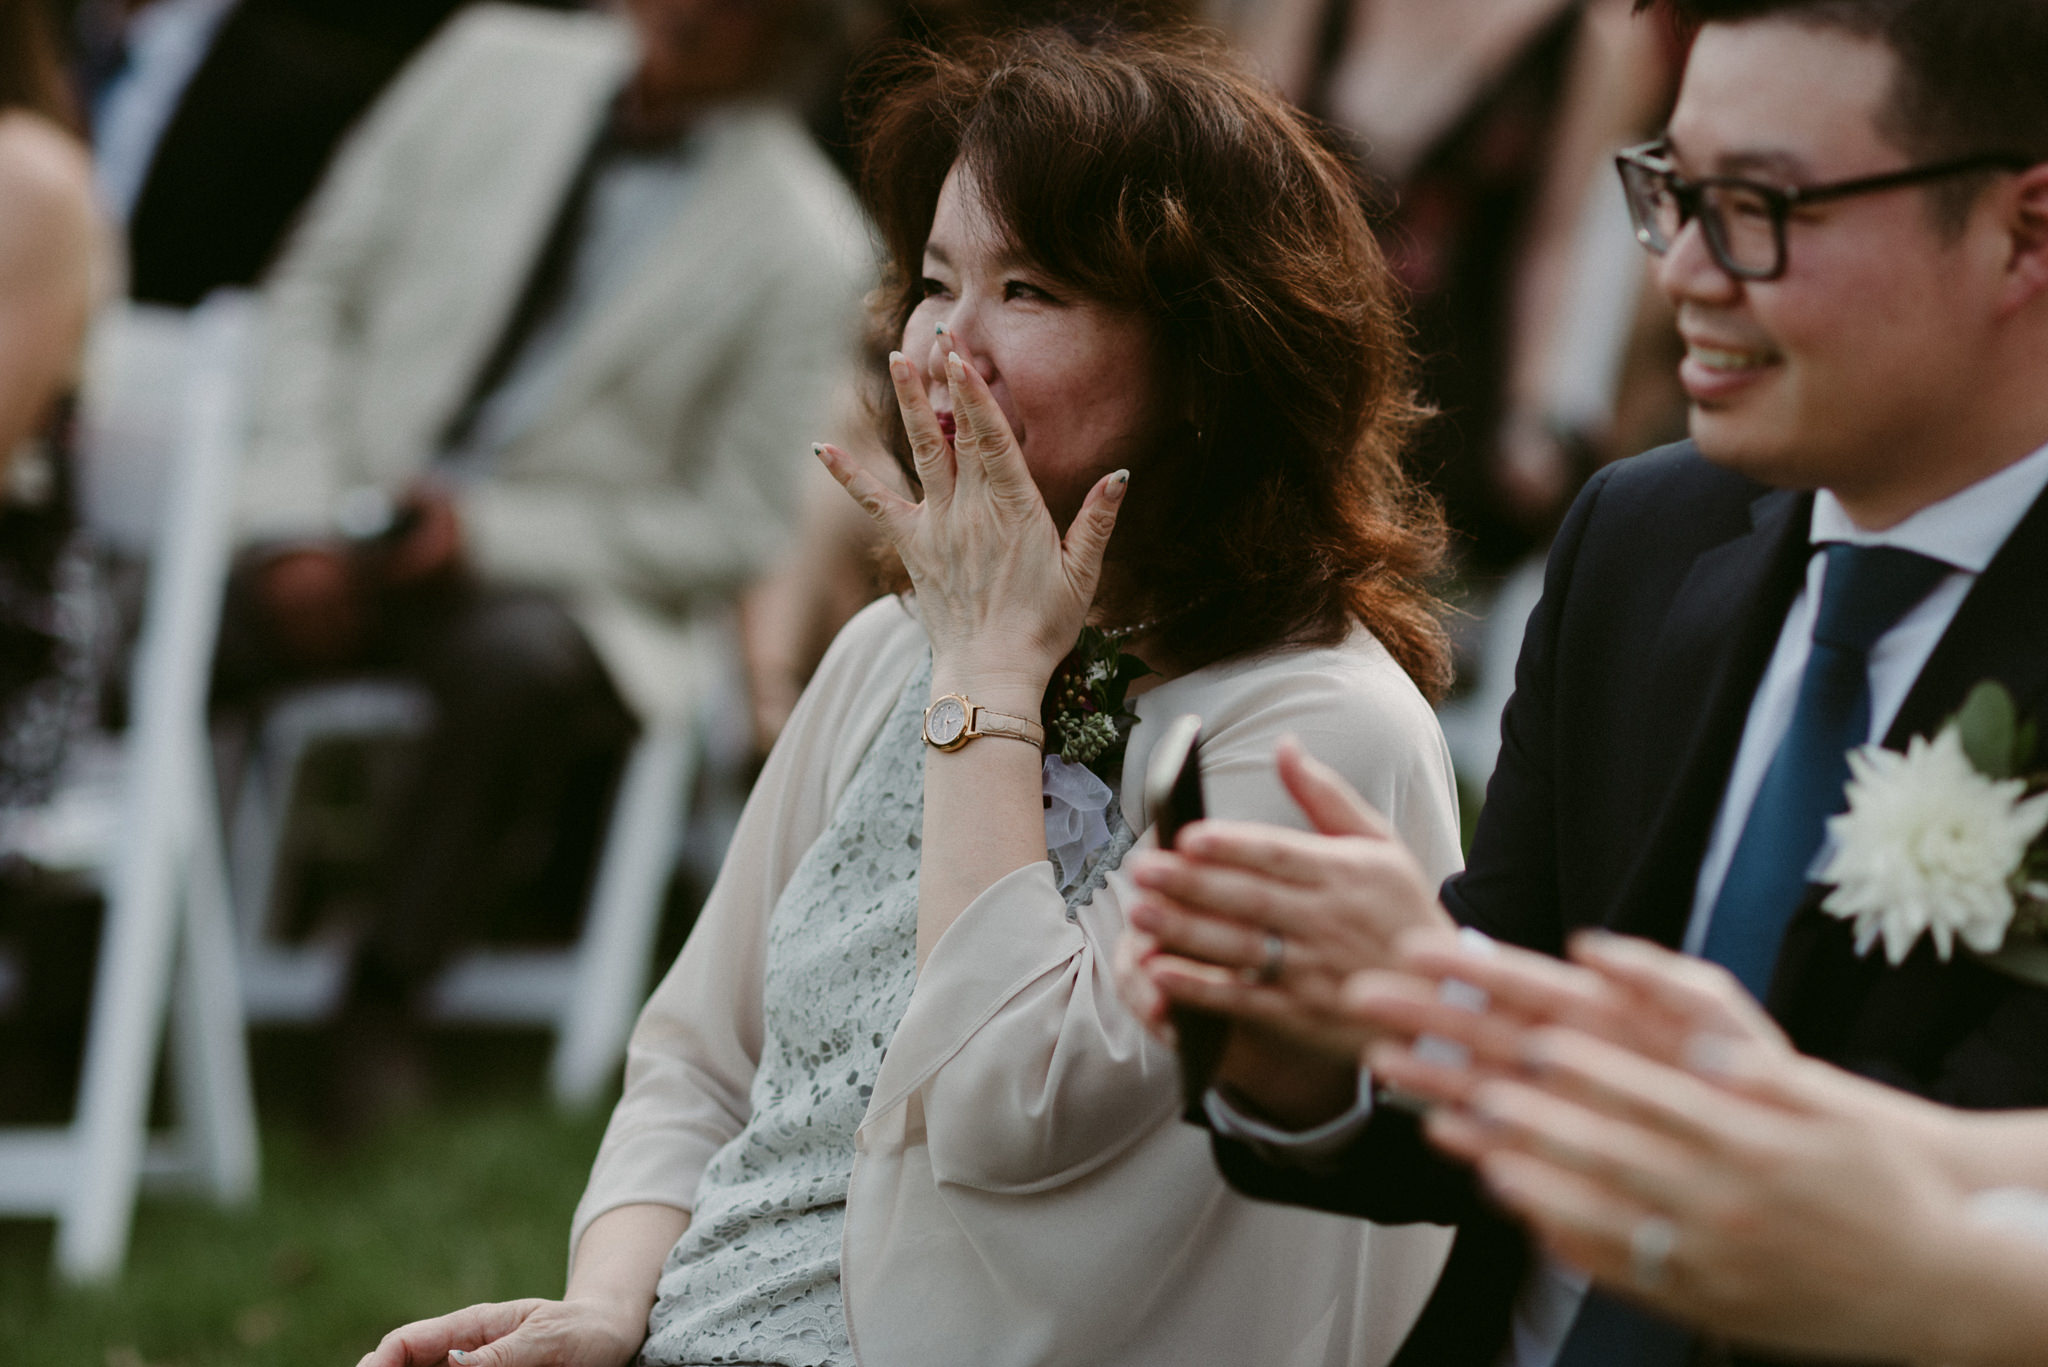 Emotional mother of bride during ceremony